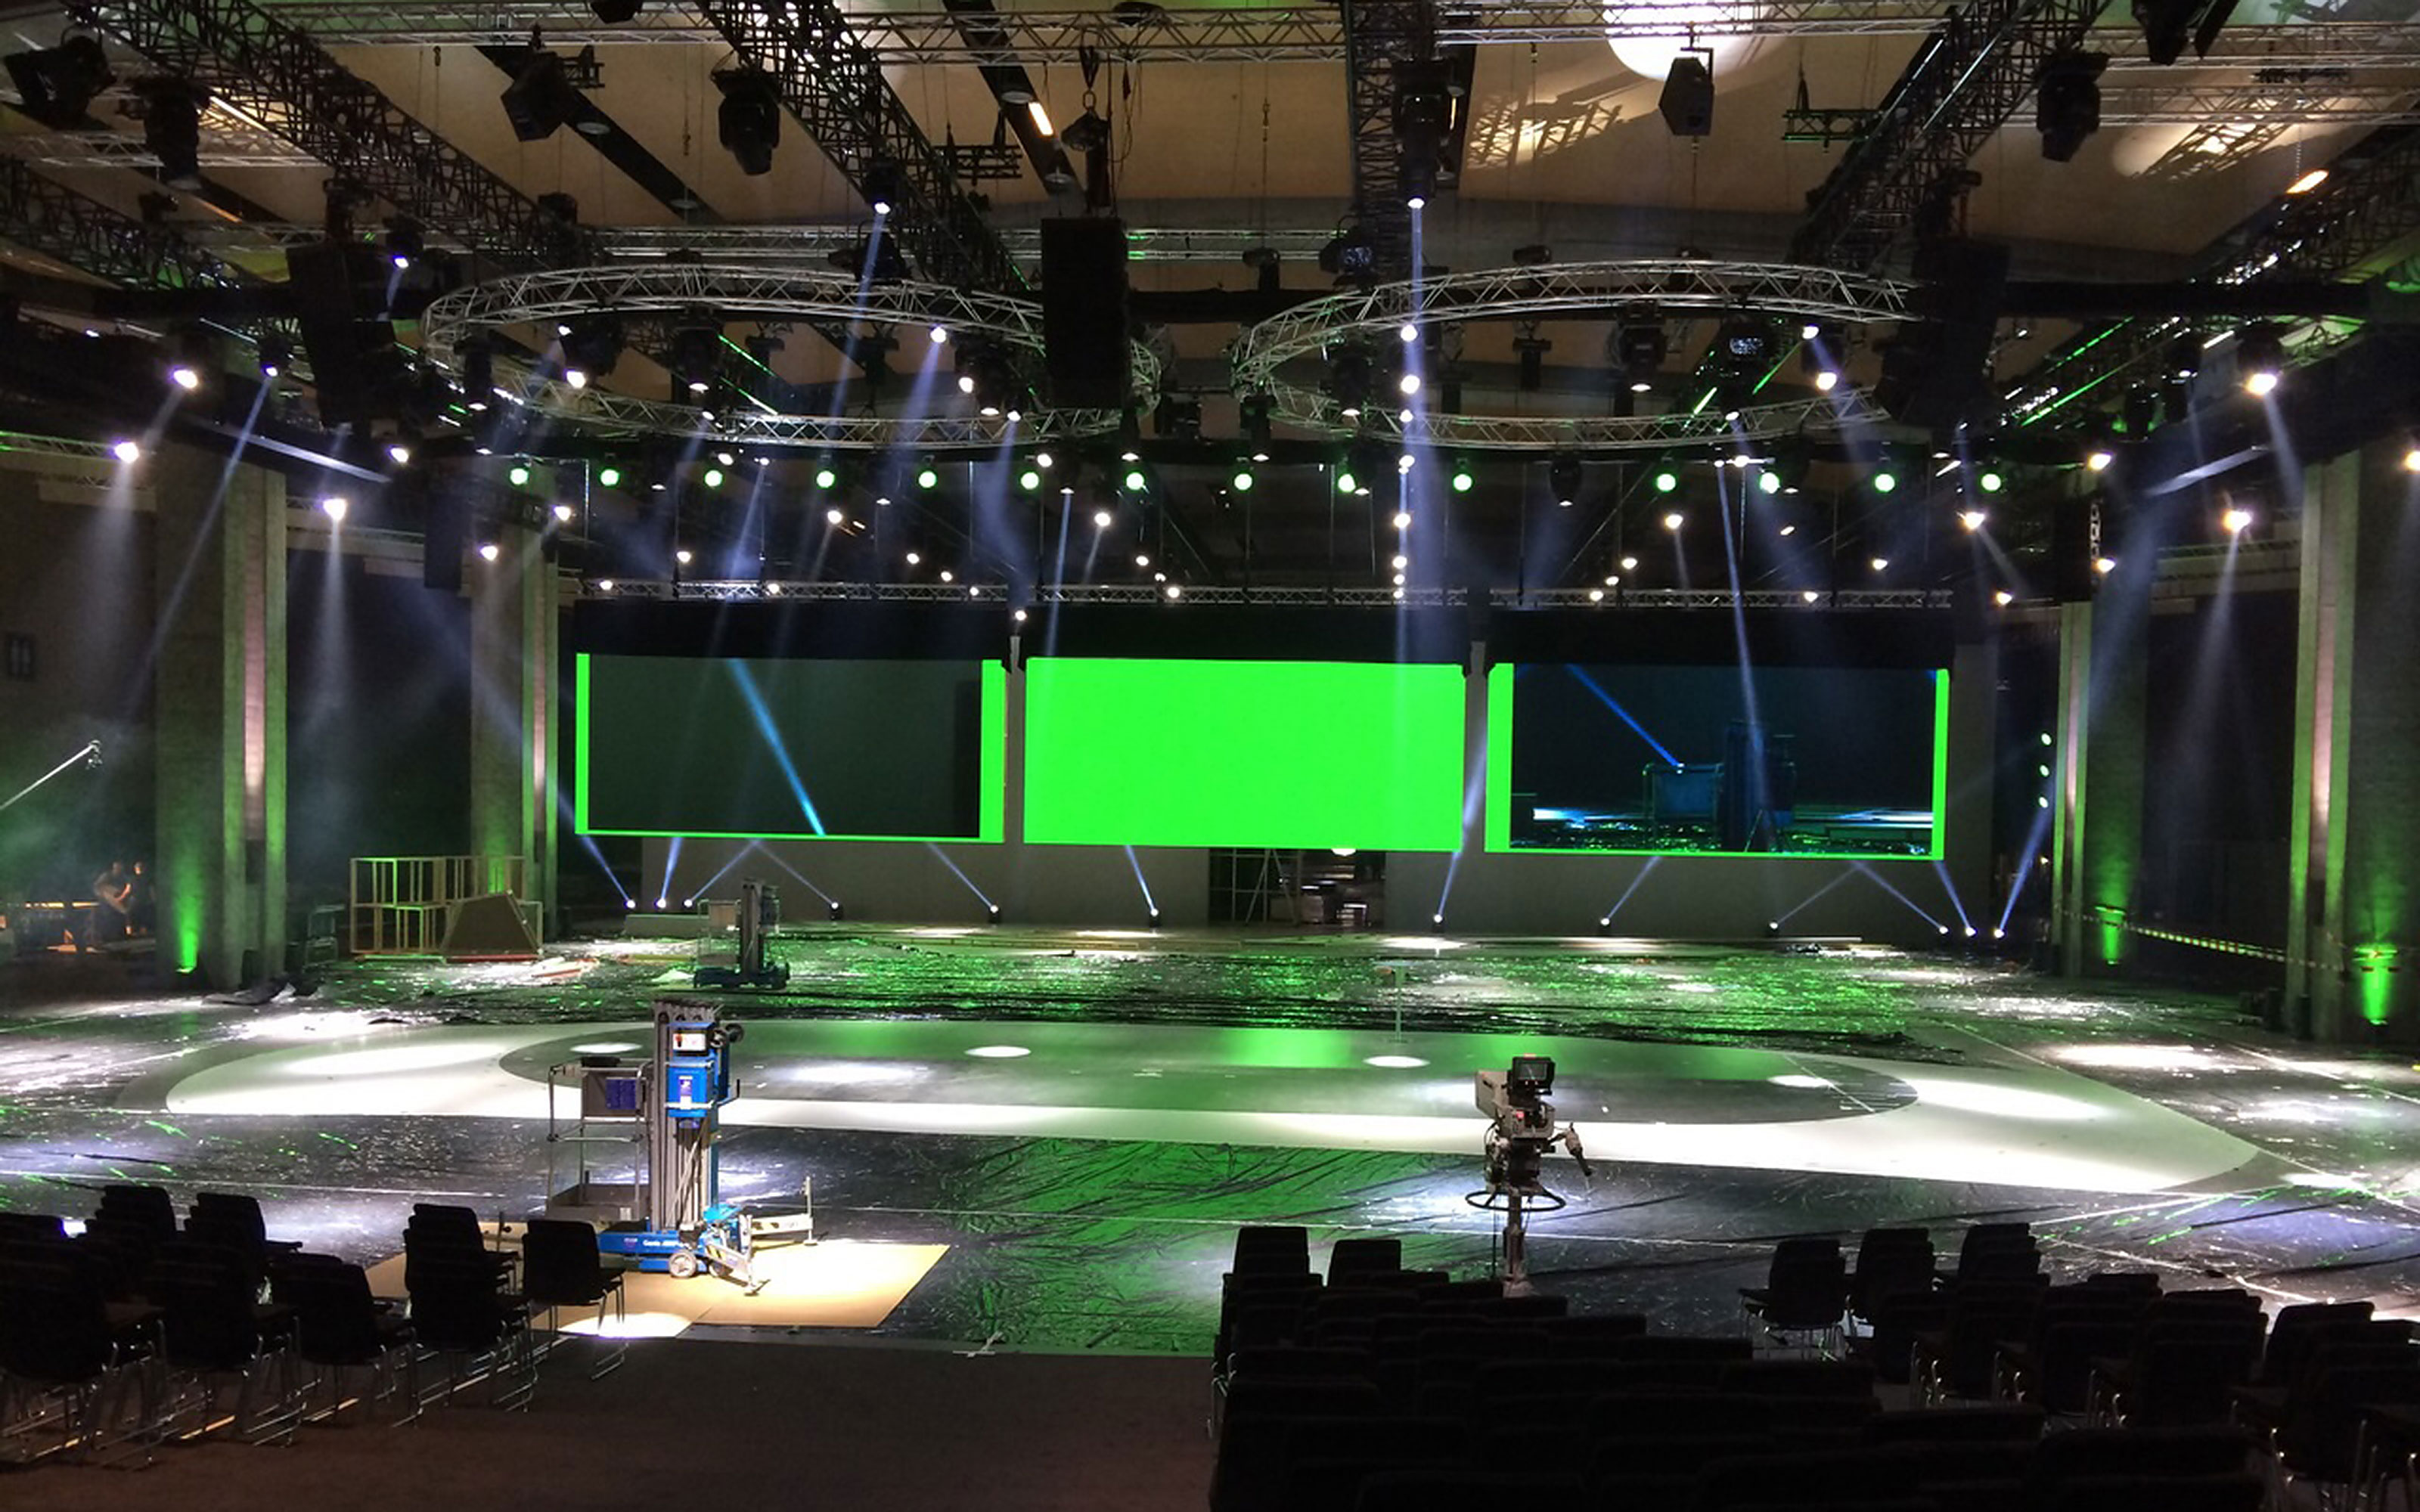 maniana-design skoda led screens onsite